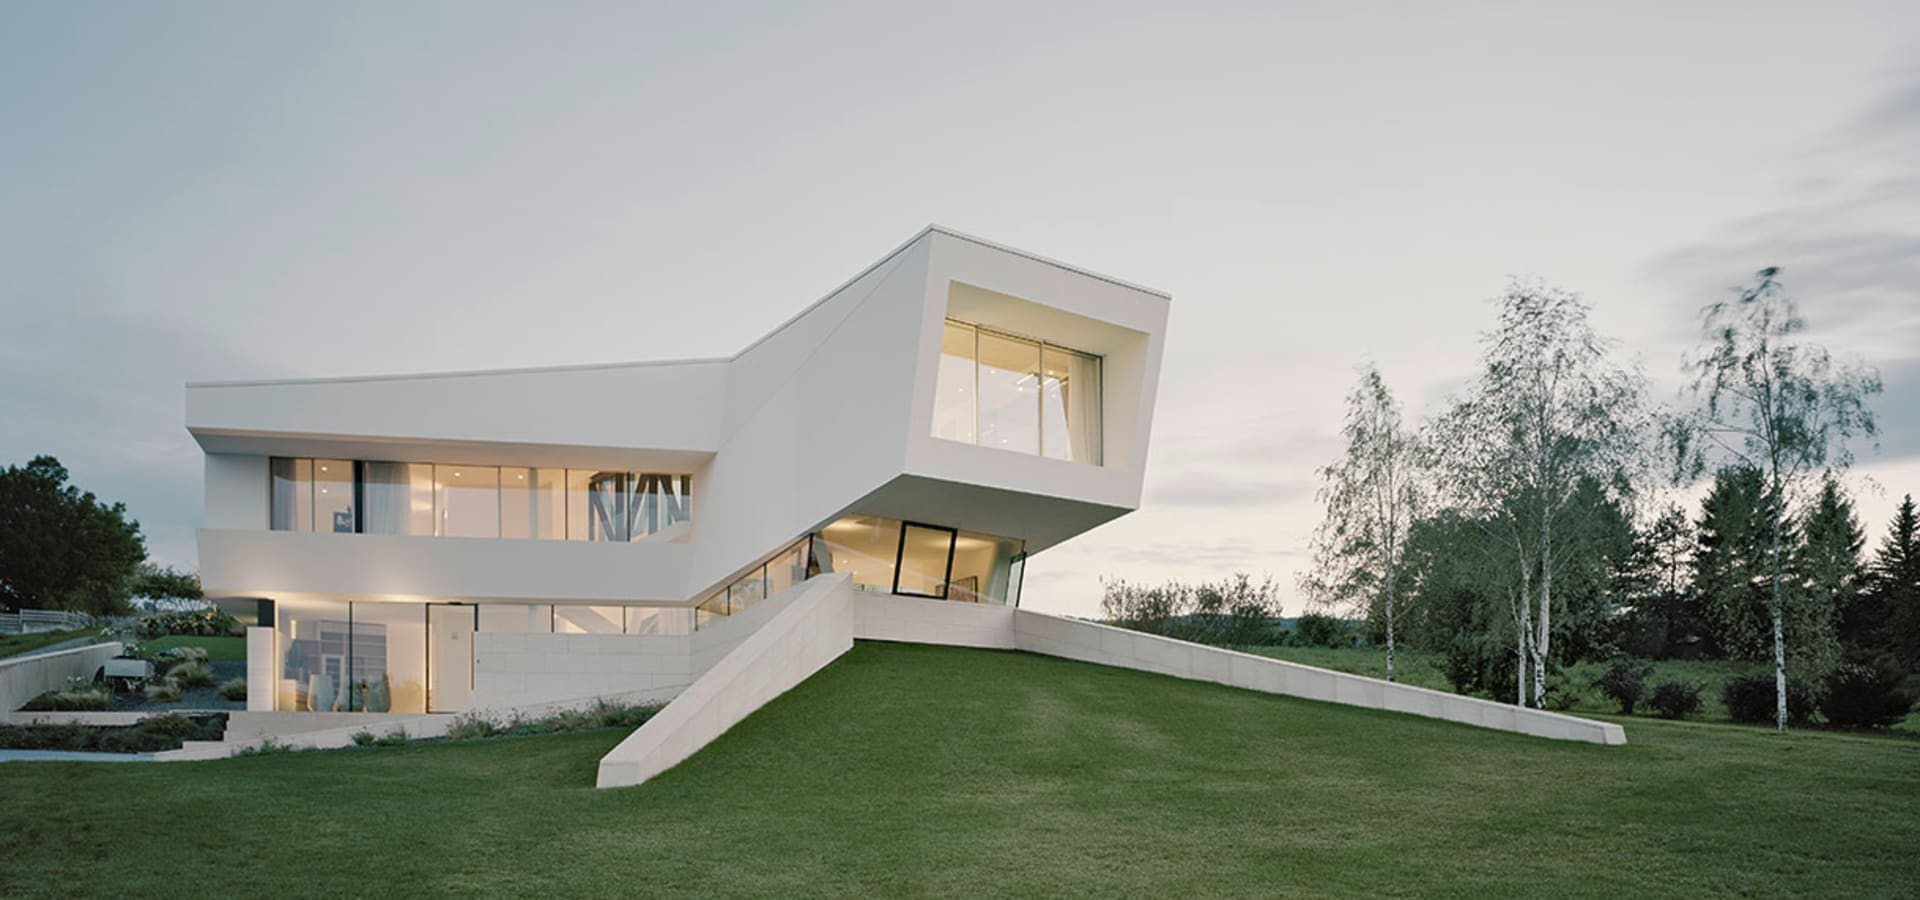 project a01 architects, ZT Gmbh